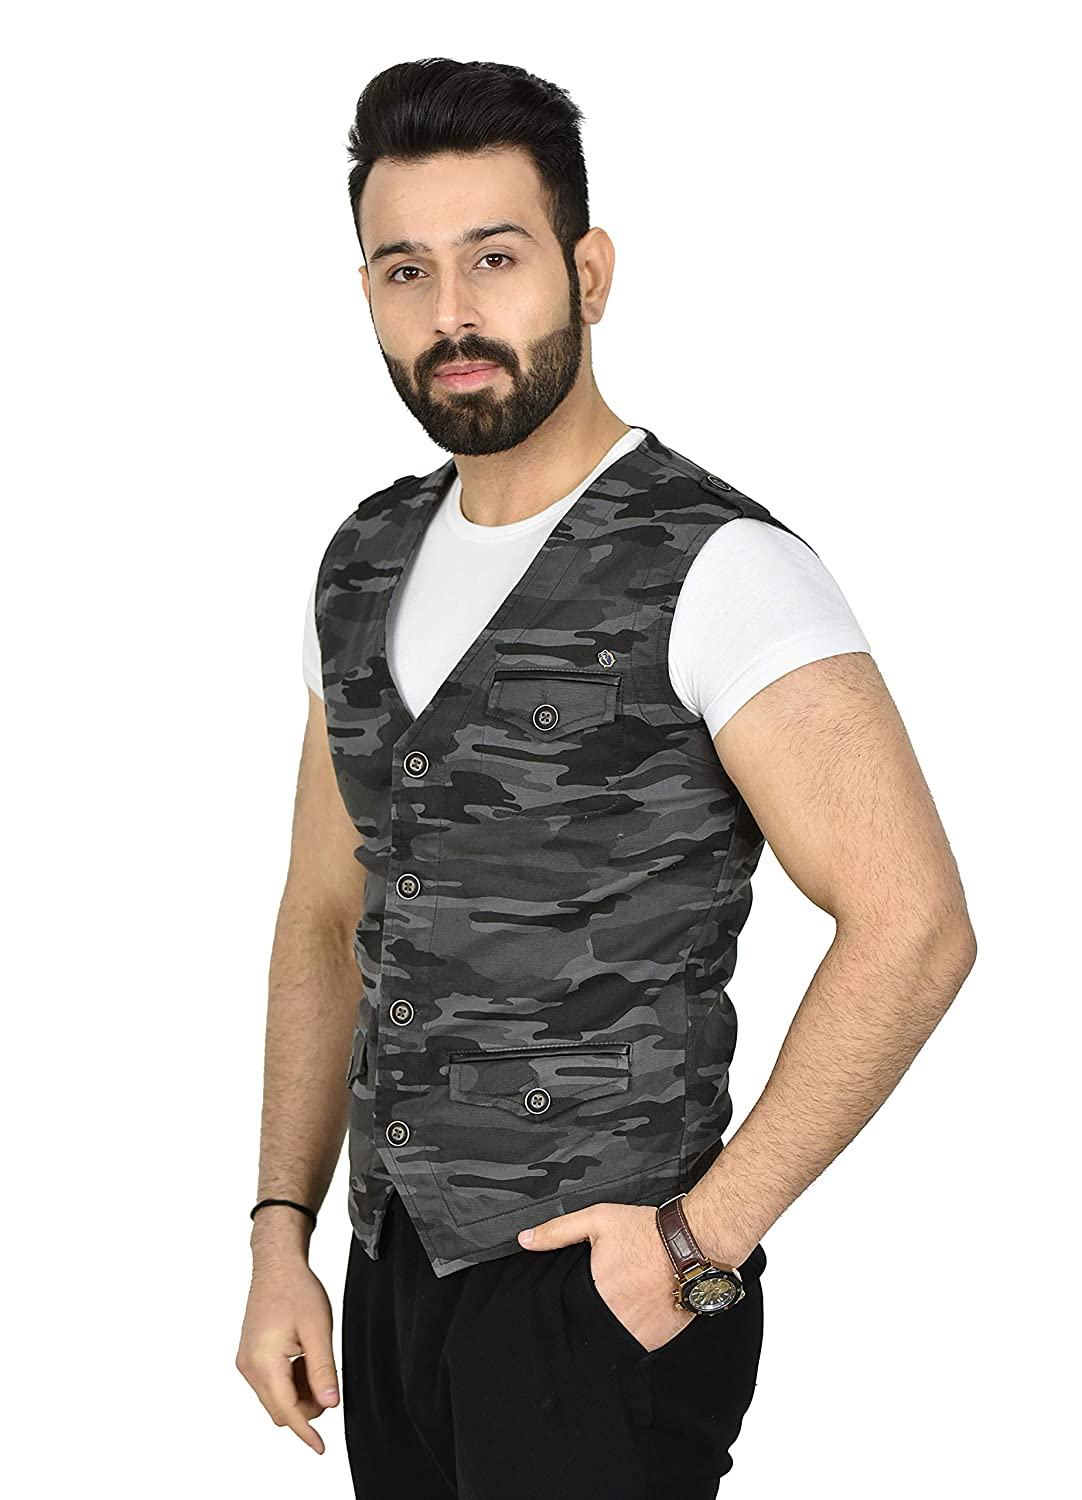 Urge Fashion Factory Mens Casual Camouflage Print Vest with Pockets